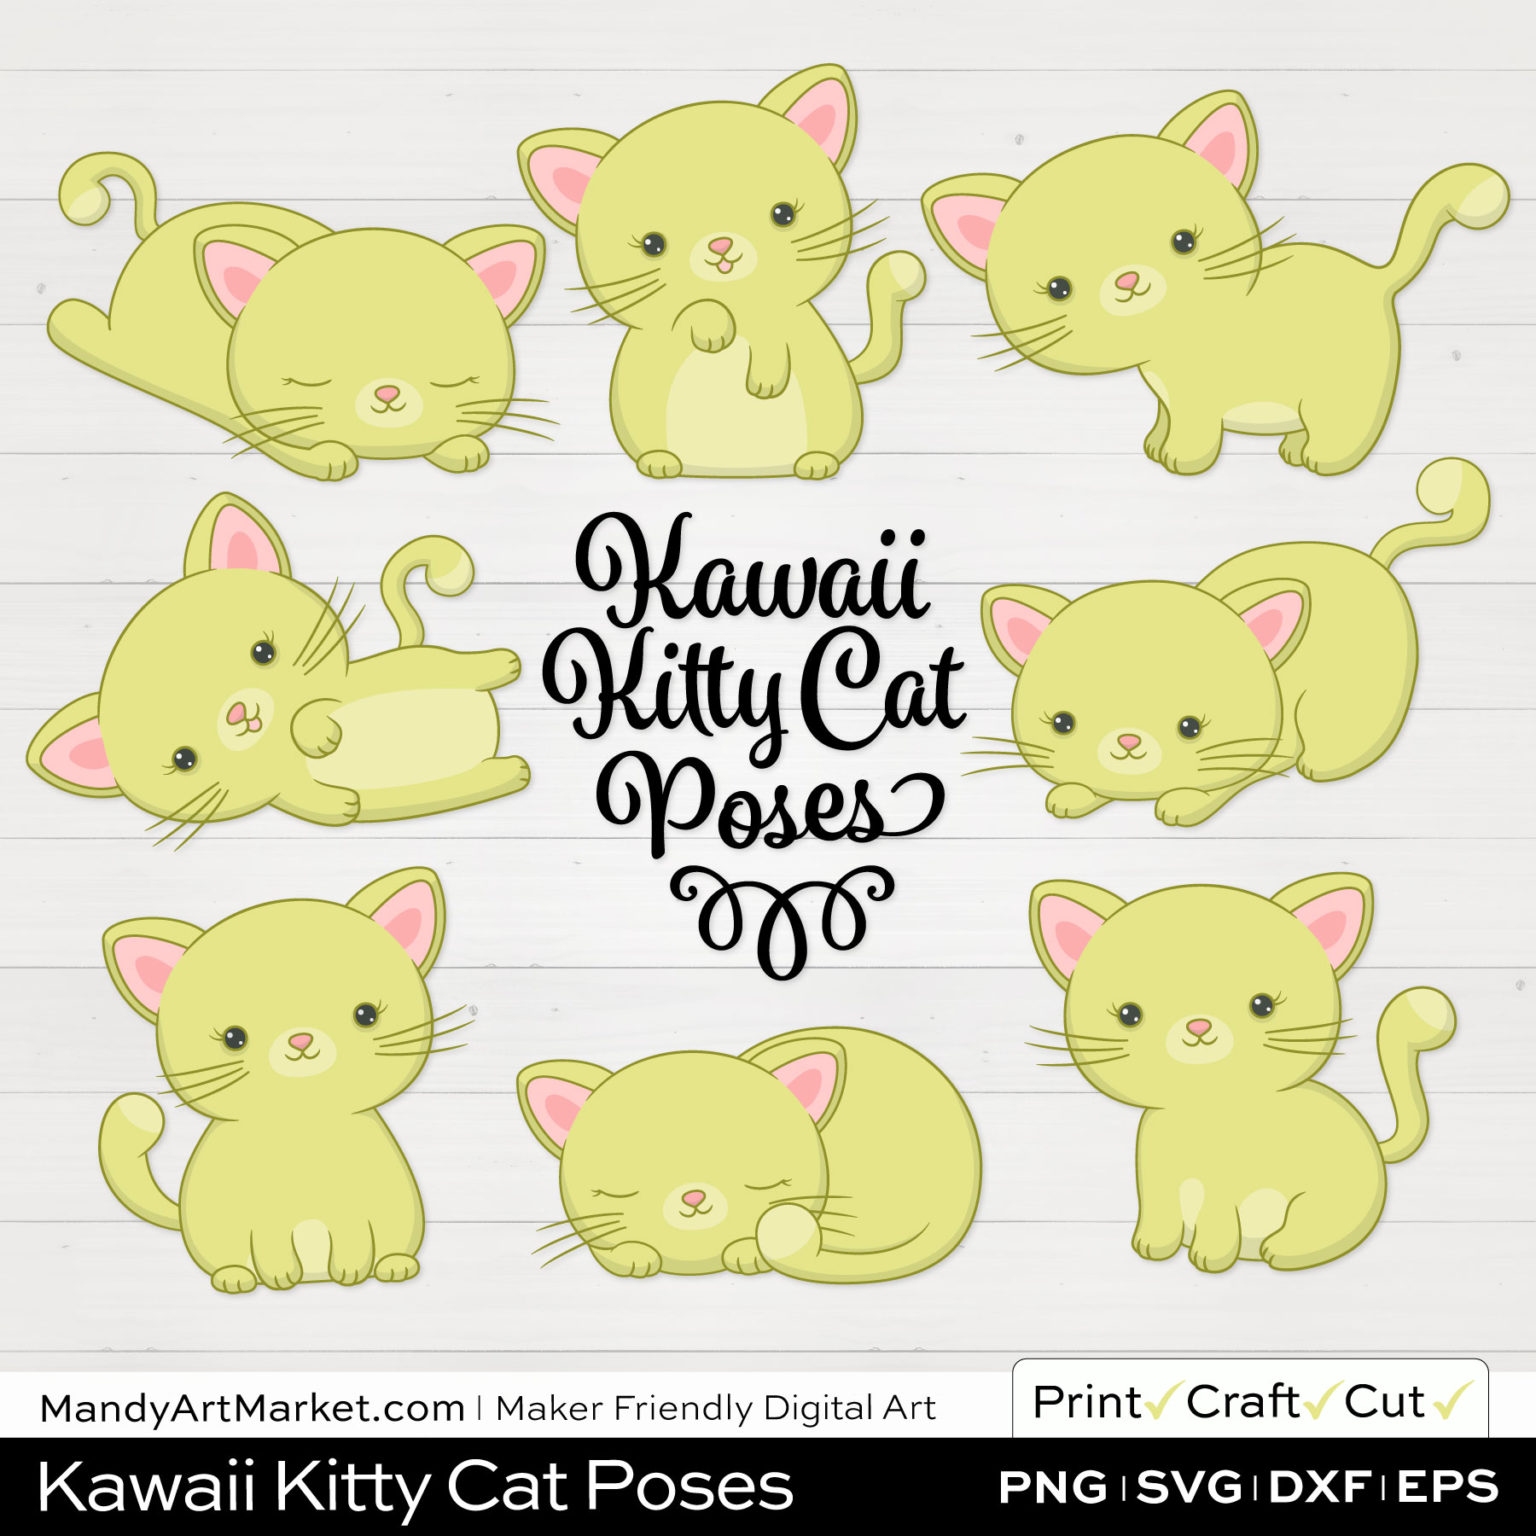 Celery Green Kawaii Kitty Cat Poses Clipart on White Background